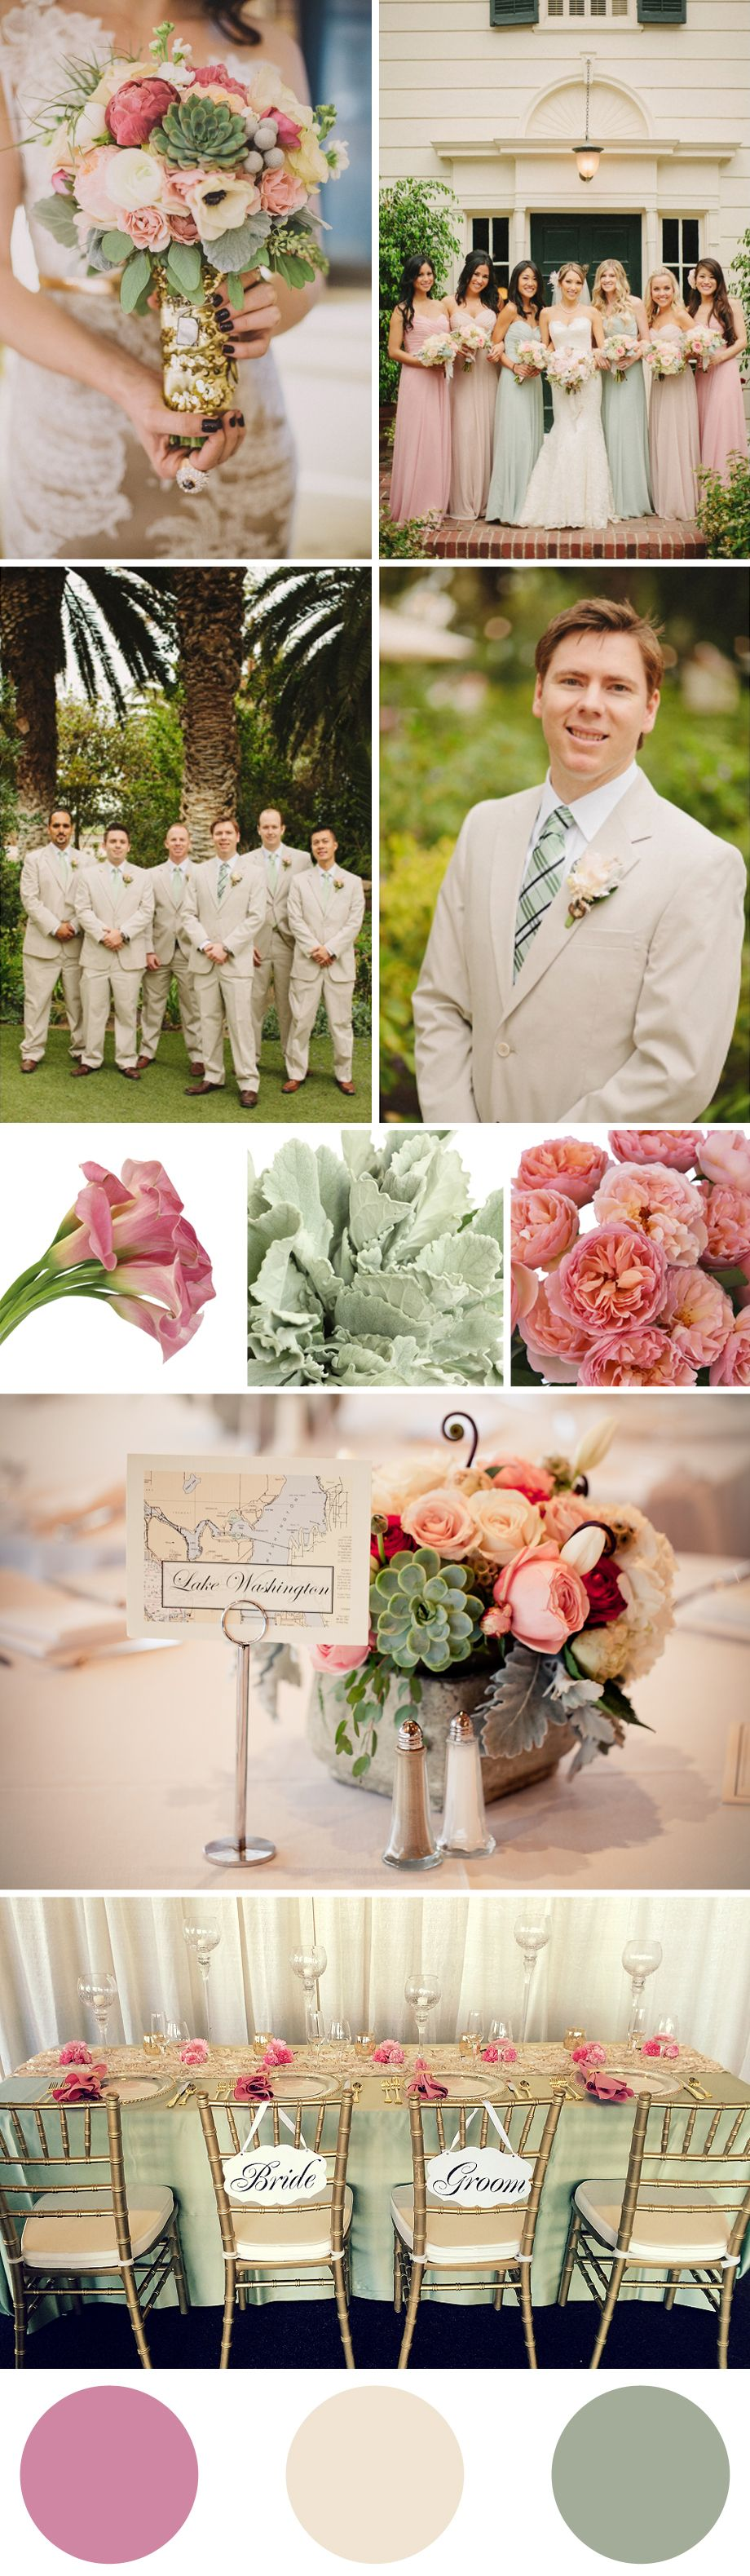 Wedding color palette cashmere rose pearled ivory and - What color is sage green ...